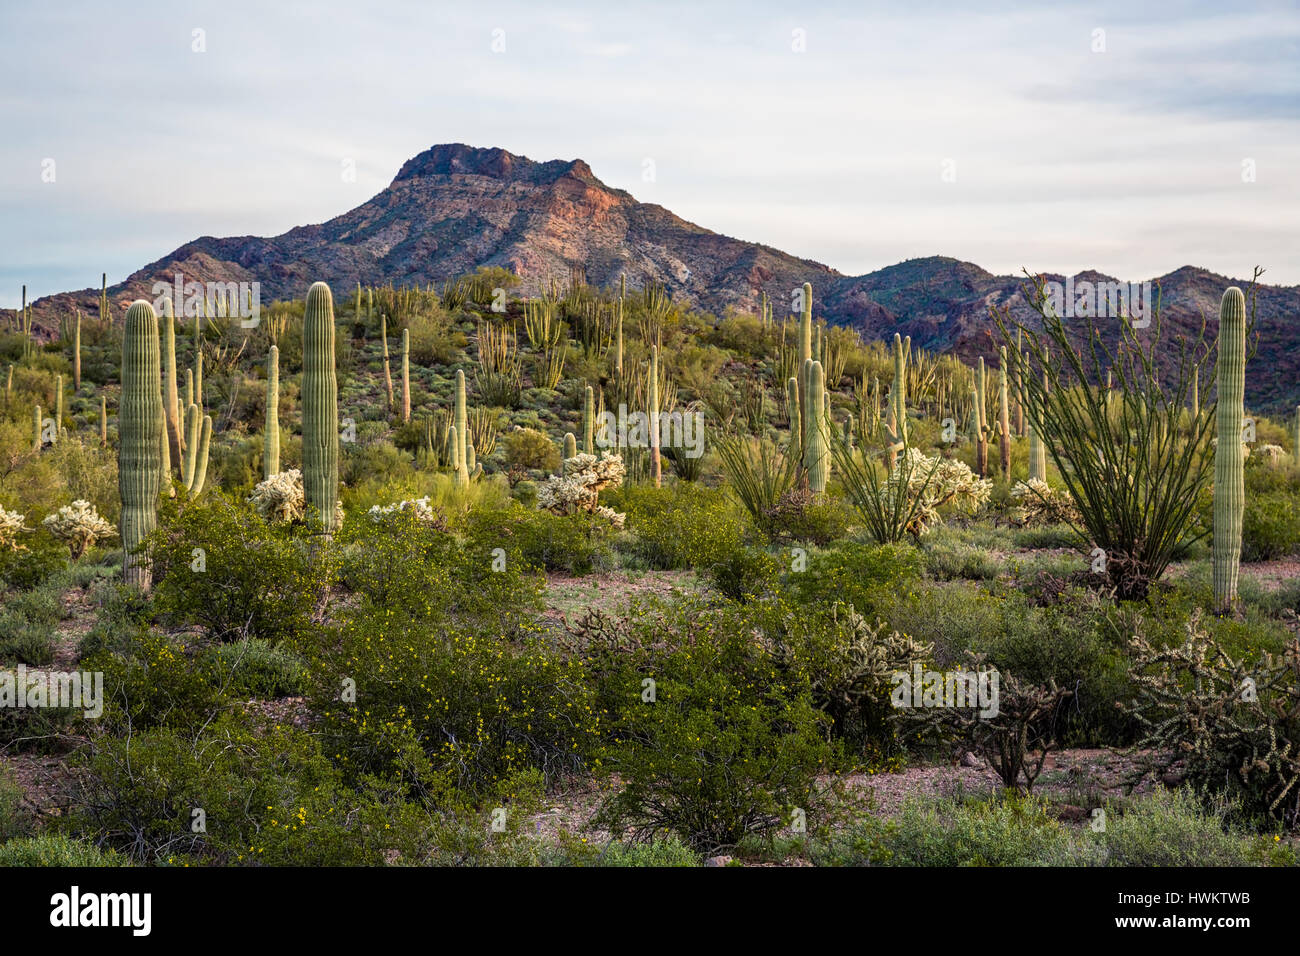 The morning dawns over the Sonoran Desert in Organ Pipe National Monument. - Stock Image